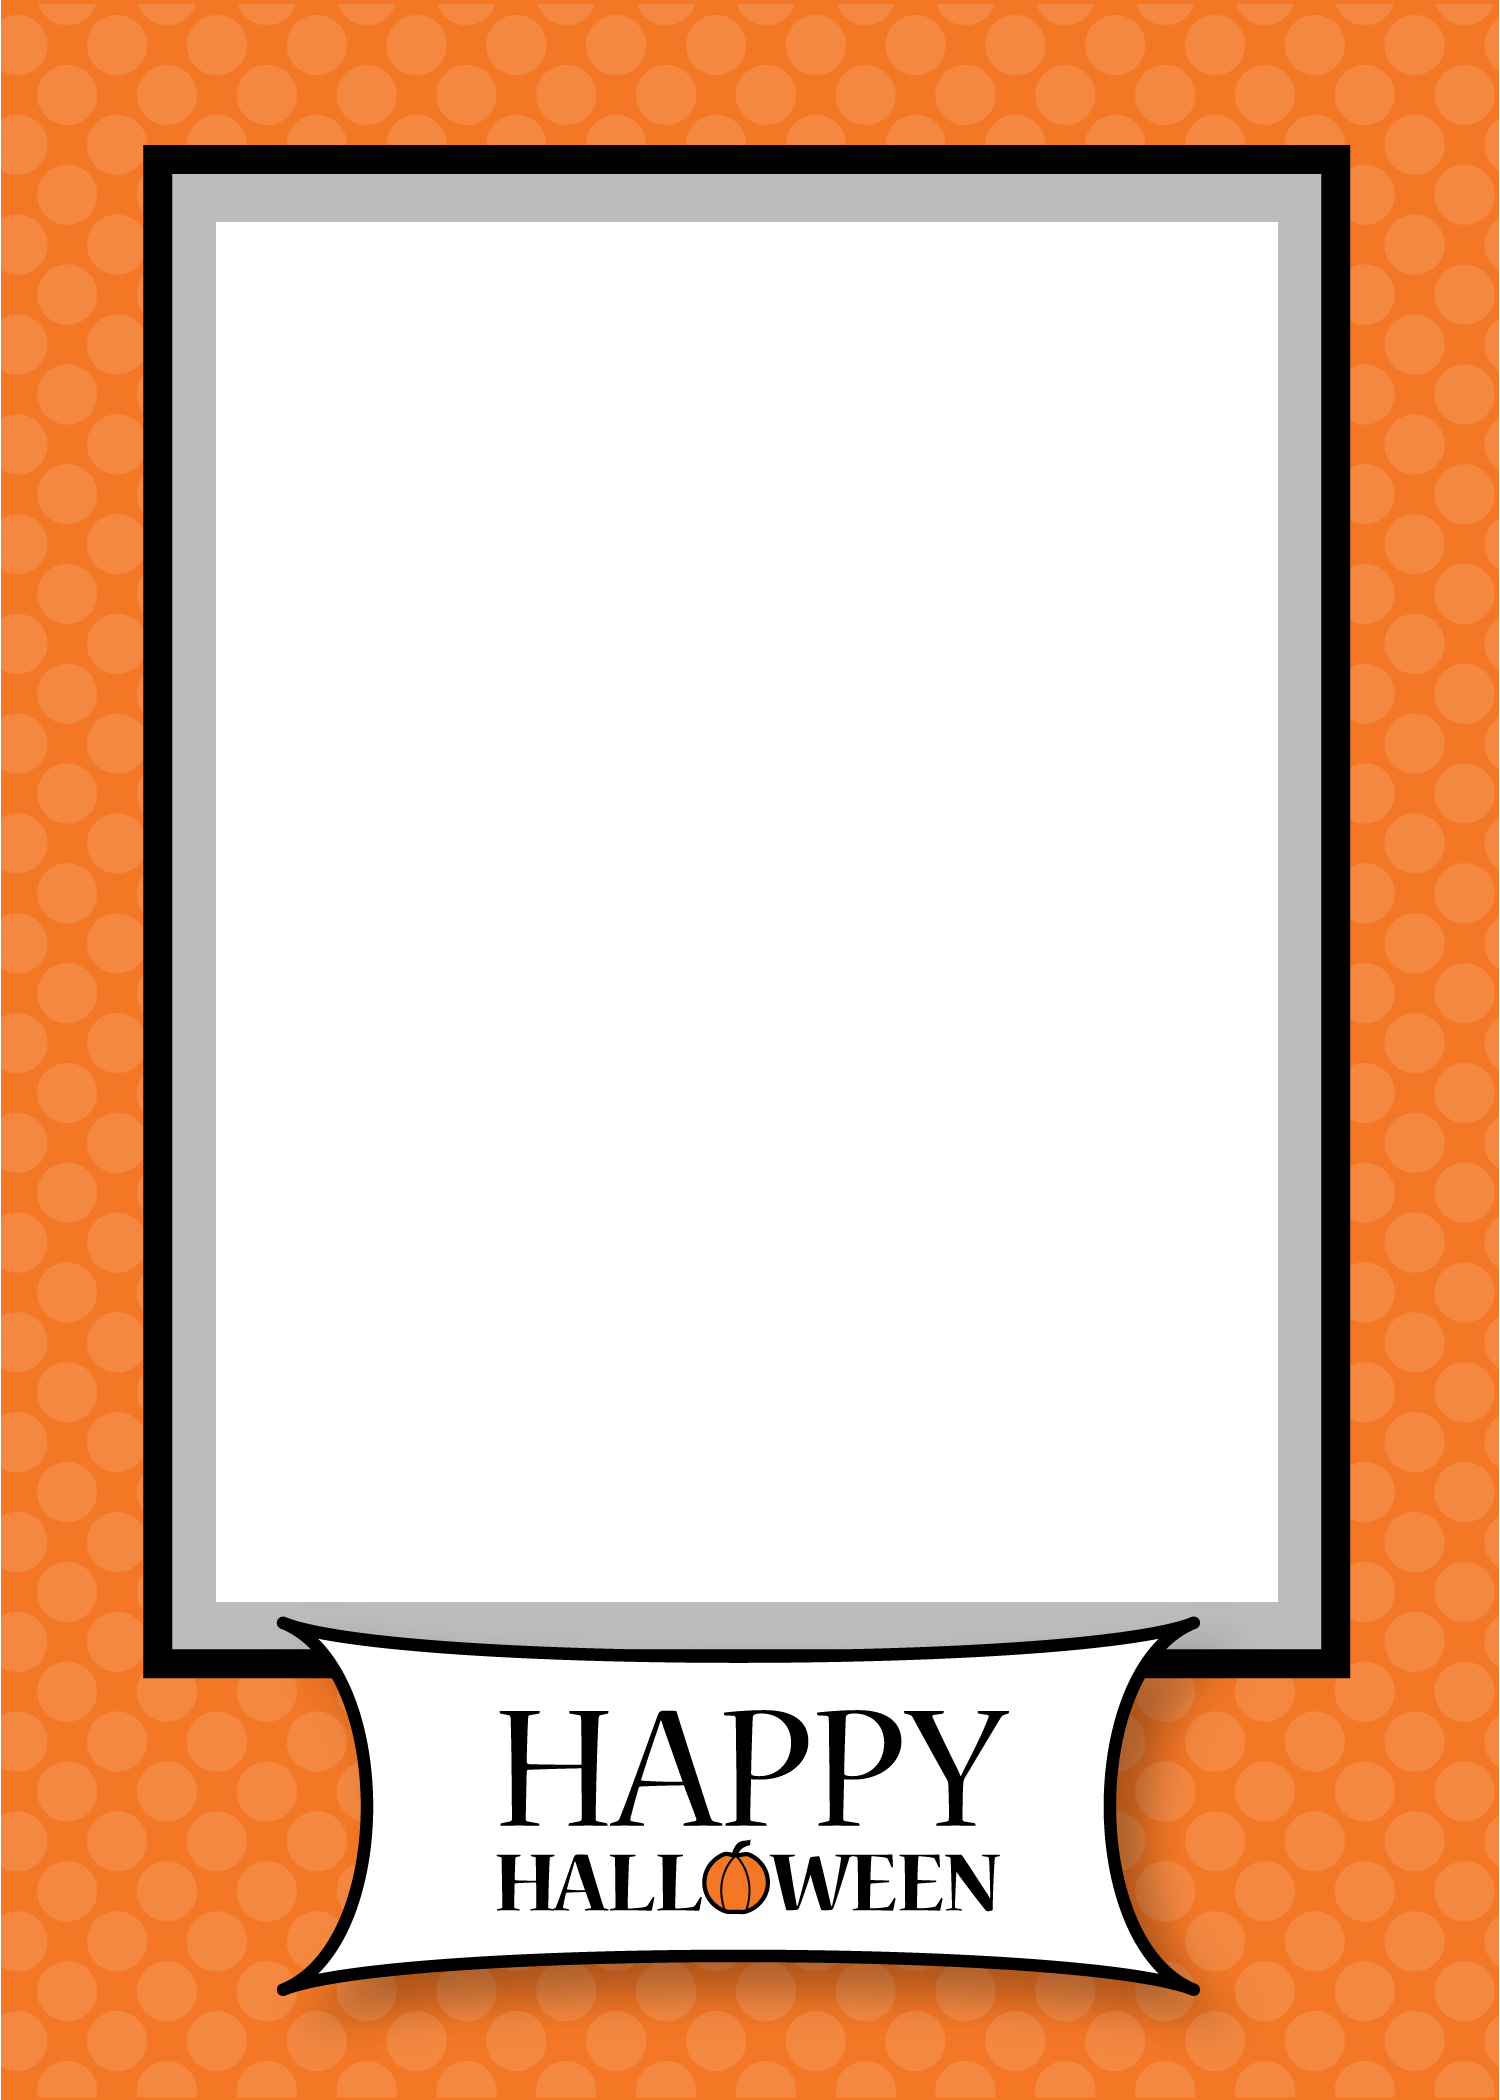 Profile Picture Frames For Facebook